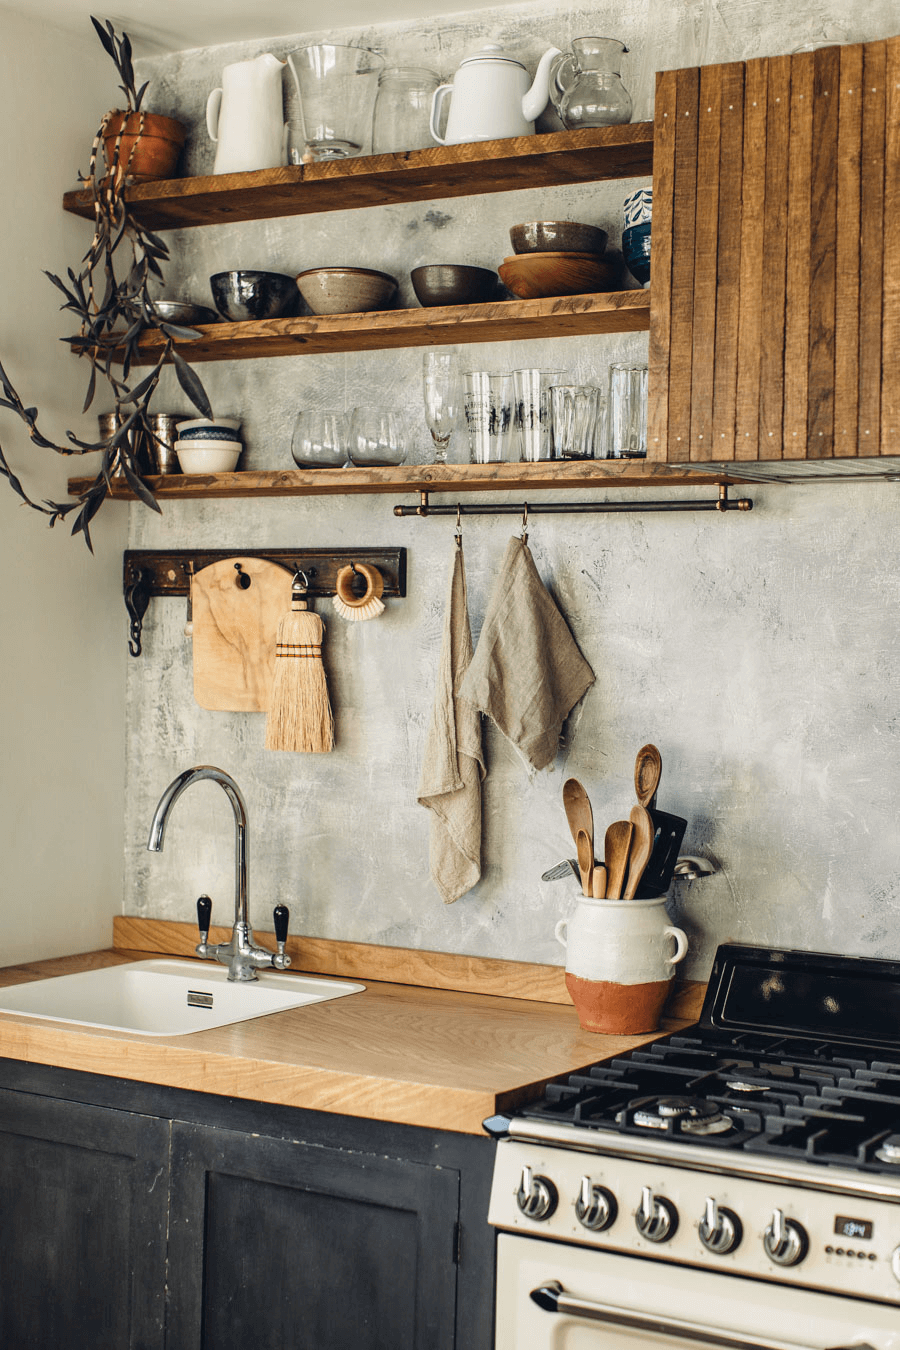 this is a rustic look Scandinavian kitchen with wooden shelves and a arga oven(1)